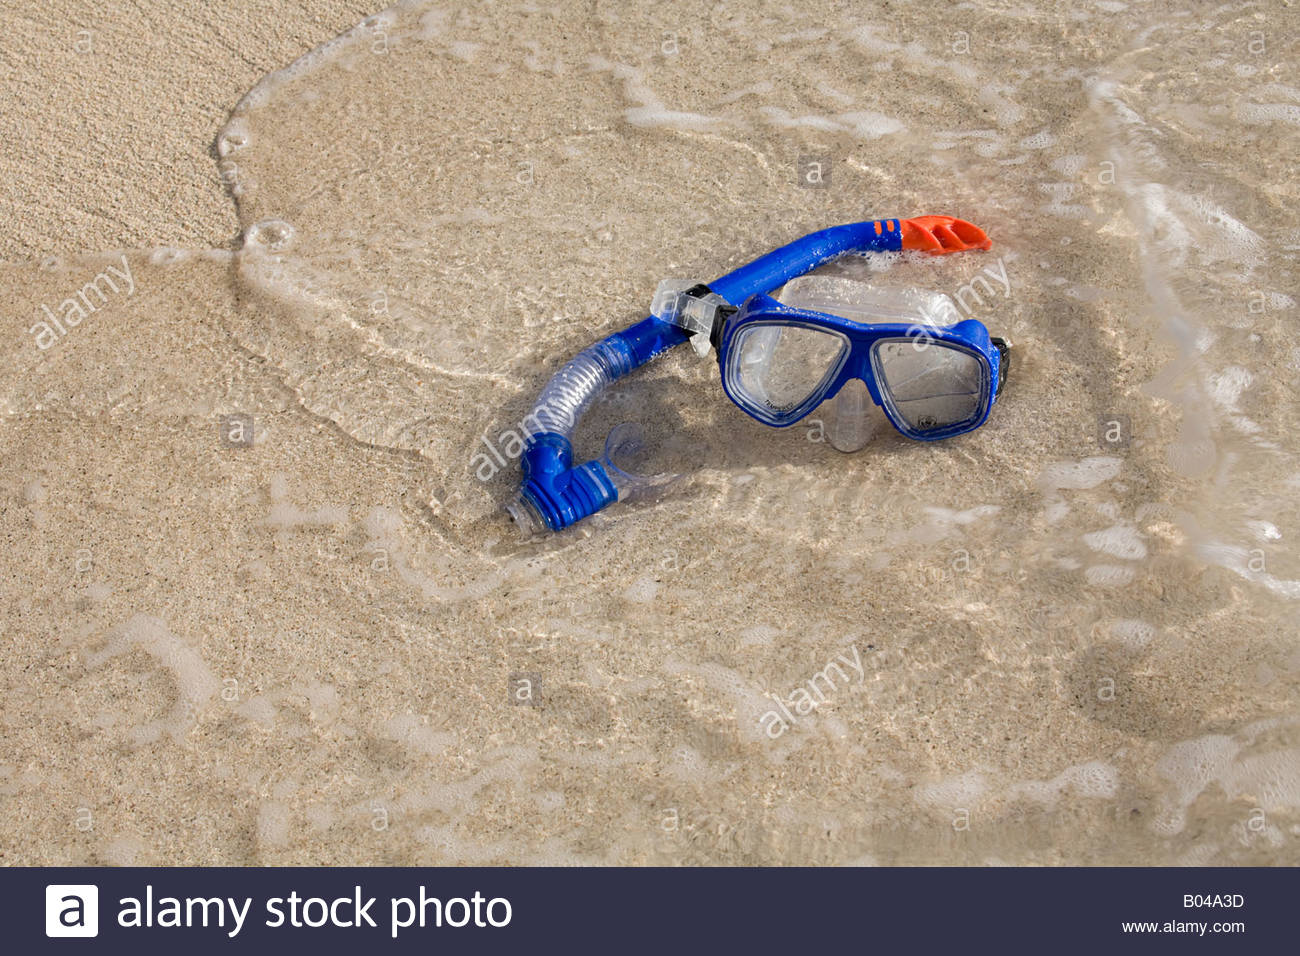 Goggles and a snorkel on a beach - Stock Image